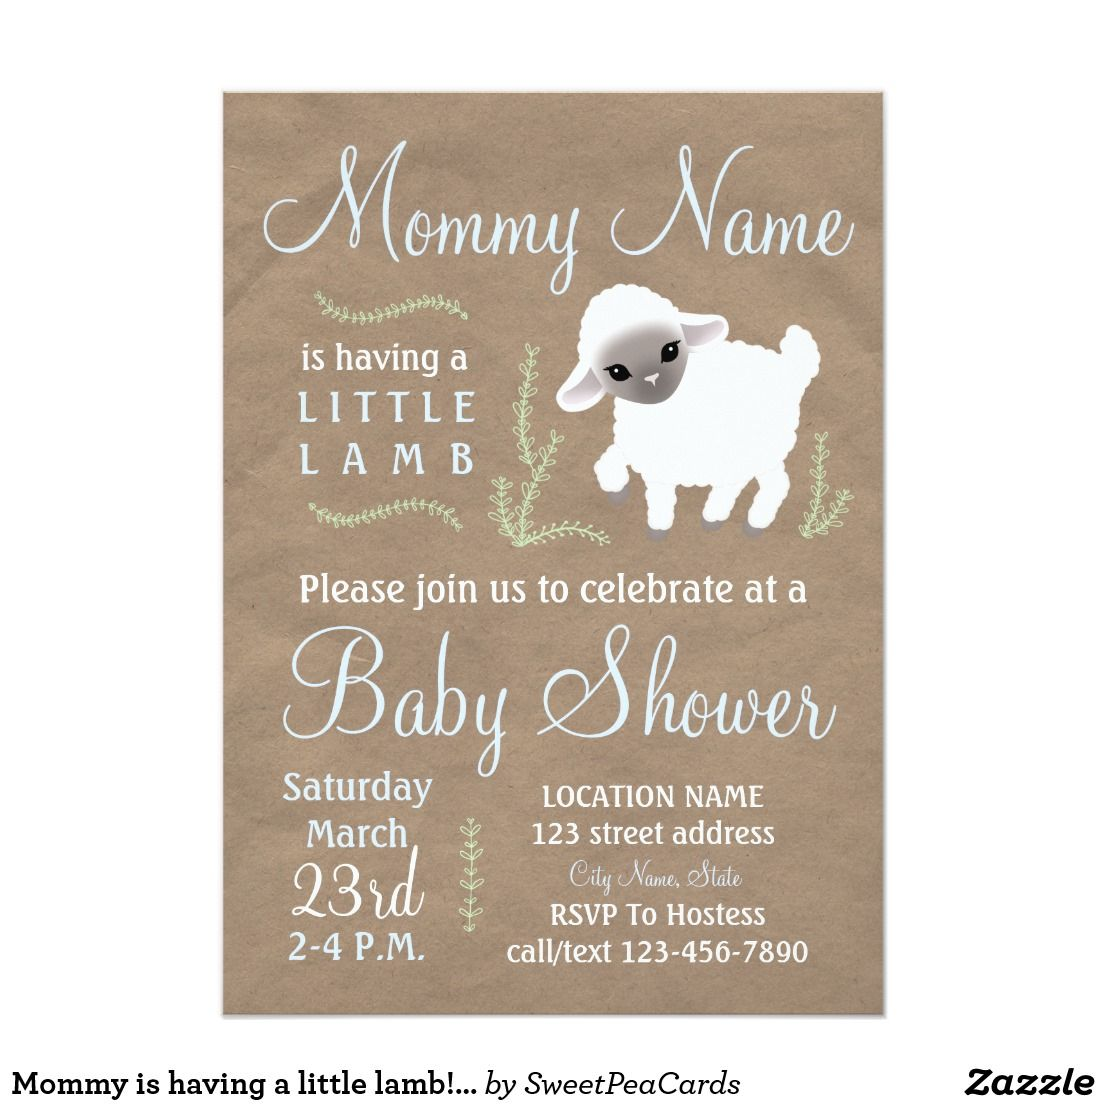 Mommy is having a little lamb! Baby shower invite | Baby Shower ...